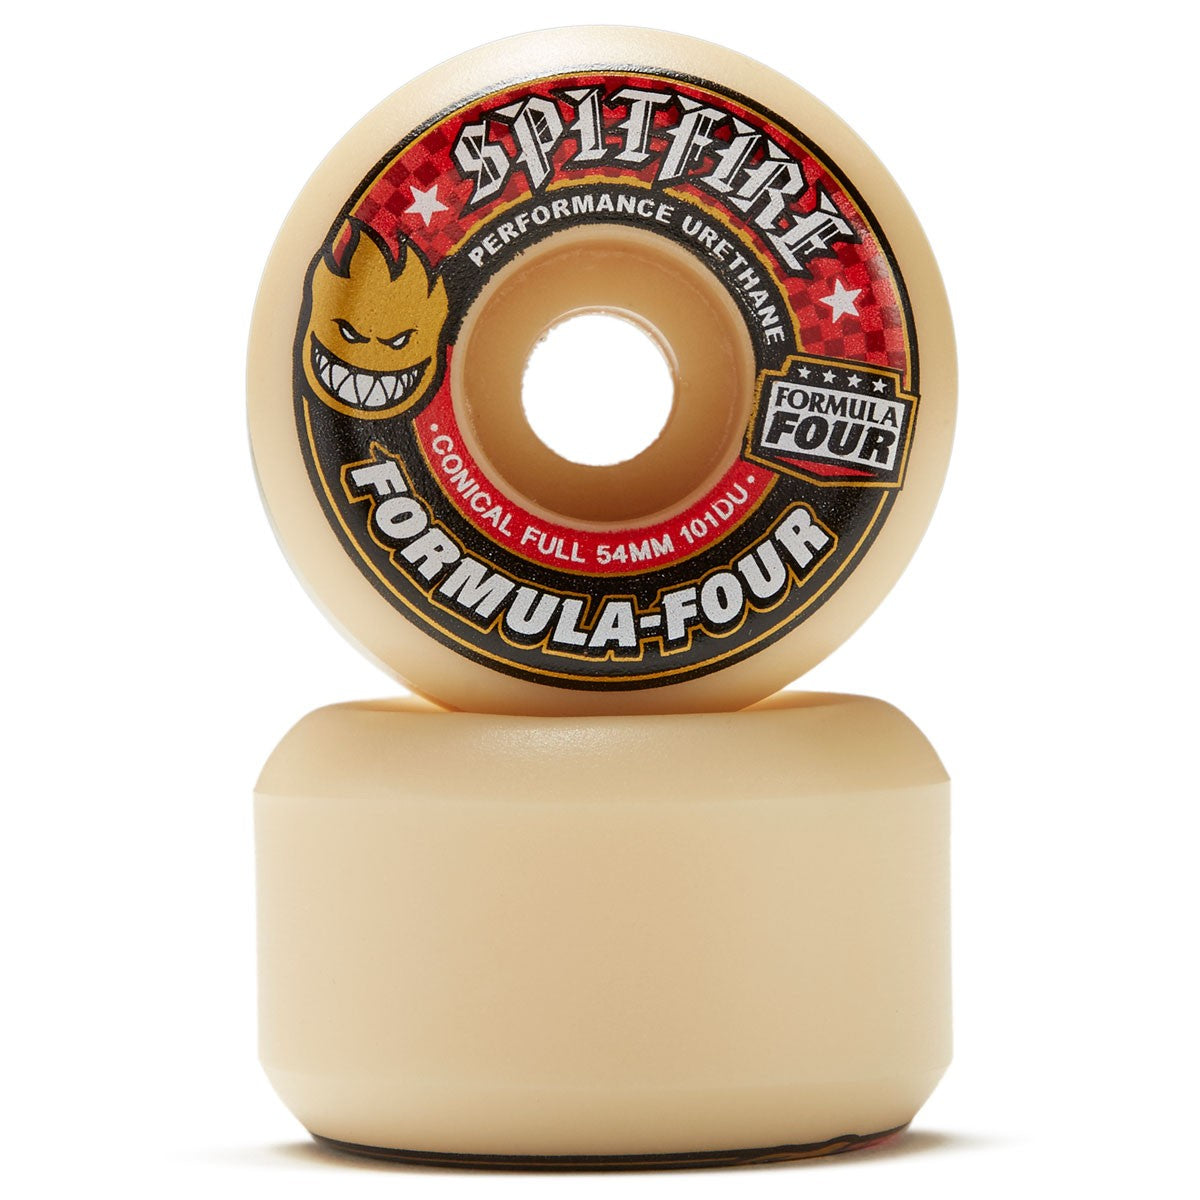 Spitfire Wheels Formula Four F4 Conical Full 101a 54mm